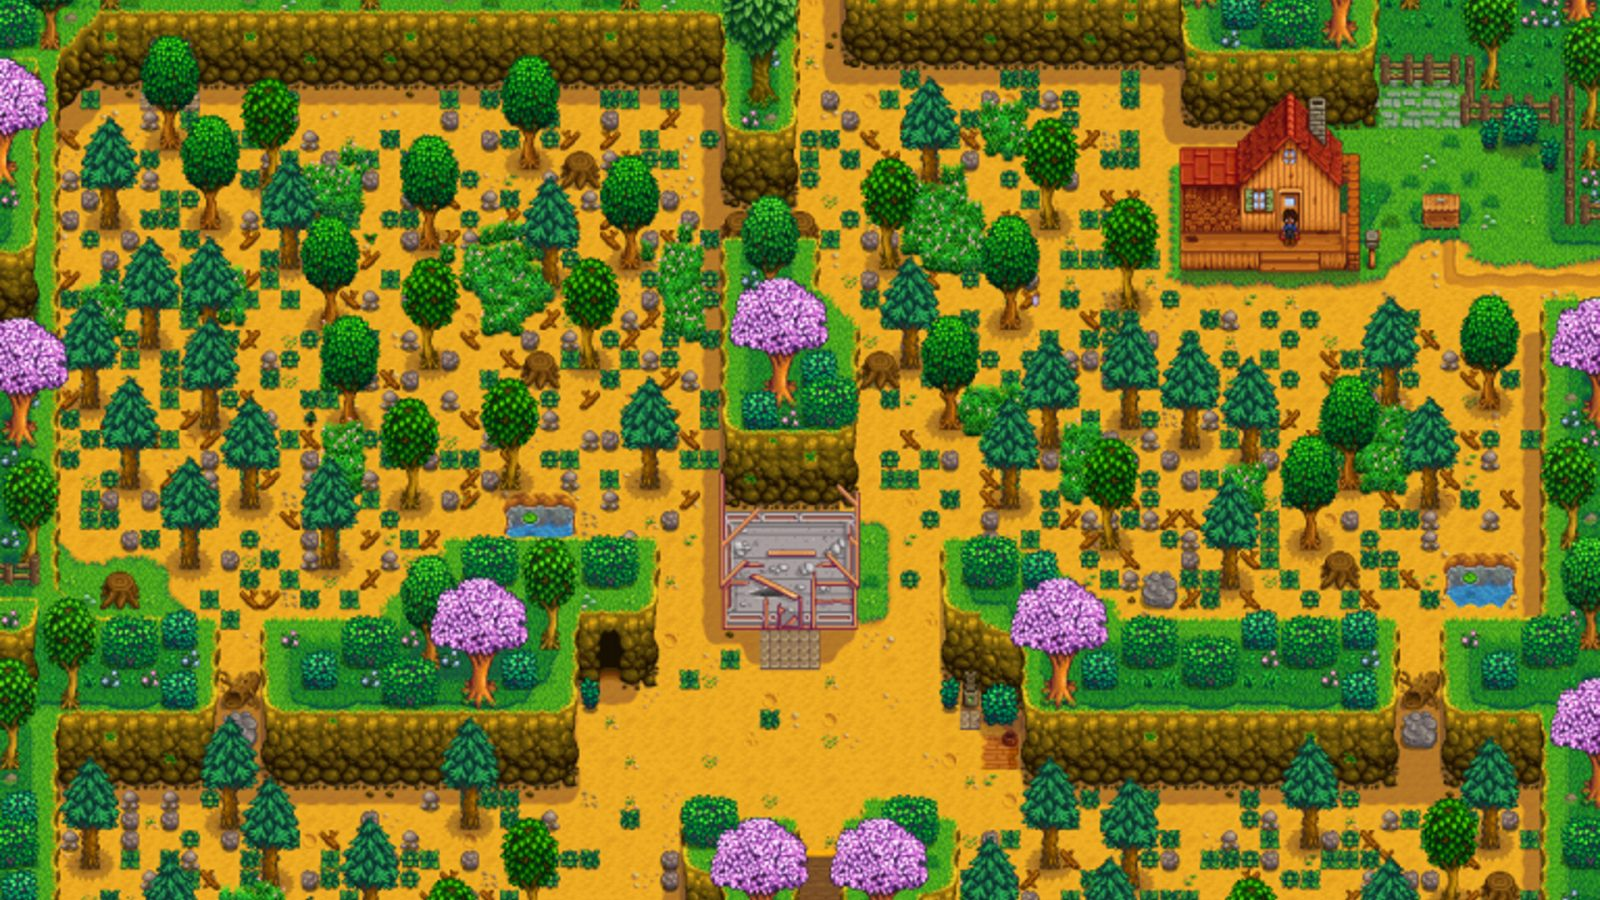 Stardew Valley's new 1.4 update is finally here, bringing hundreds of new items, gameplay features, and more